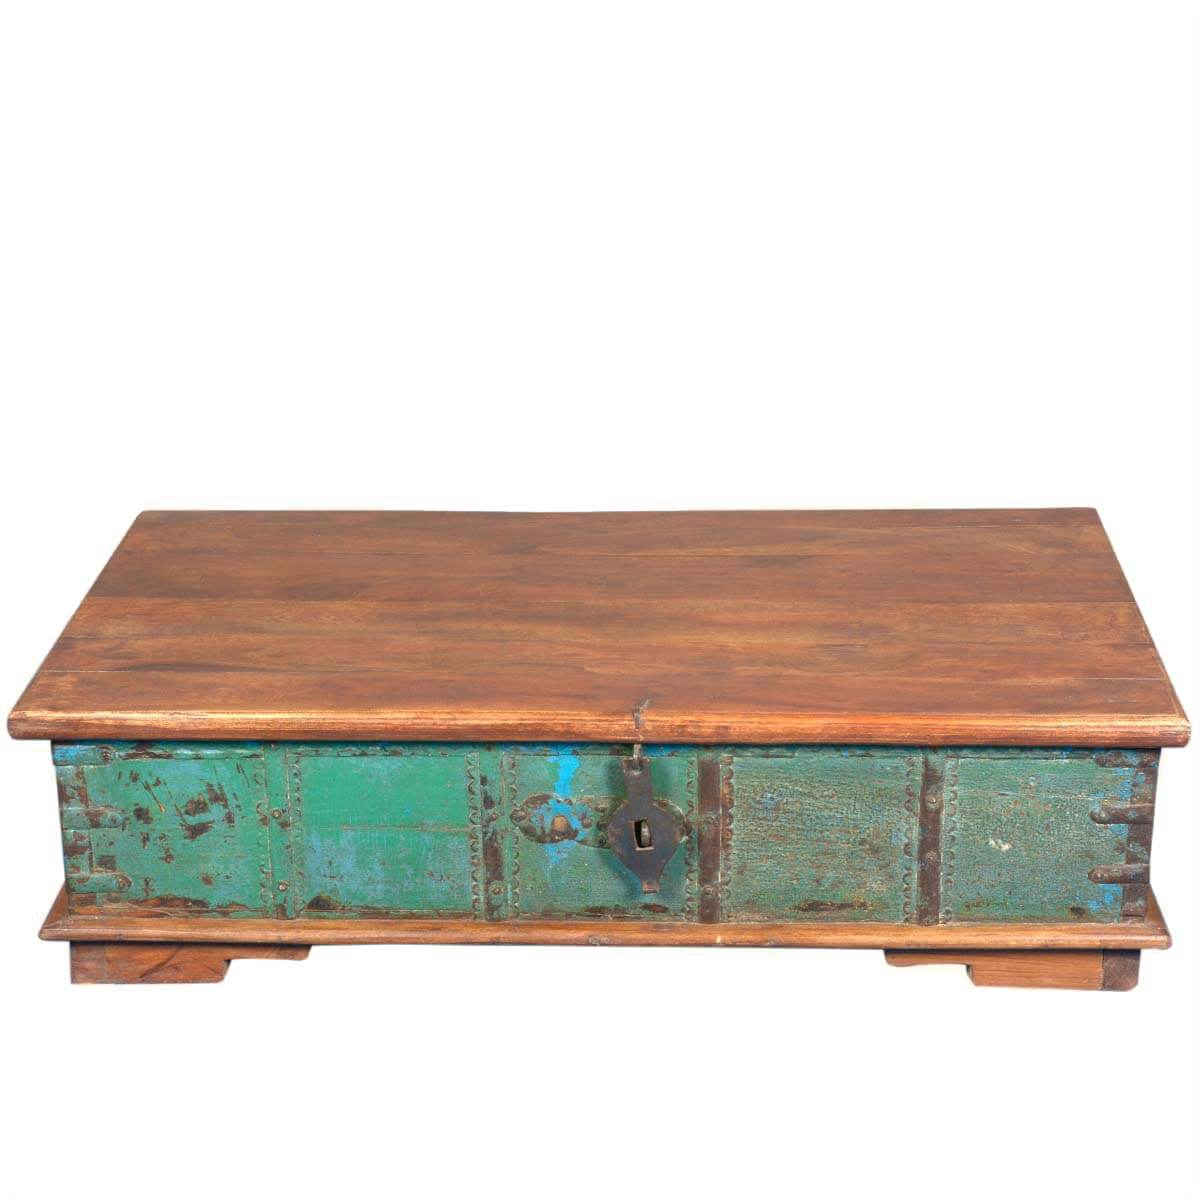 Emerald treasure reclaimed wood coffee table storage chest Coffee table chest with storage